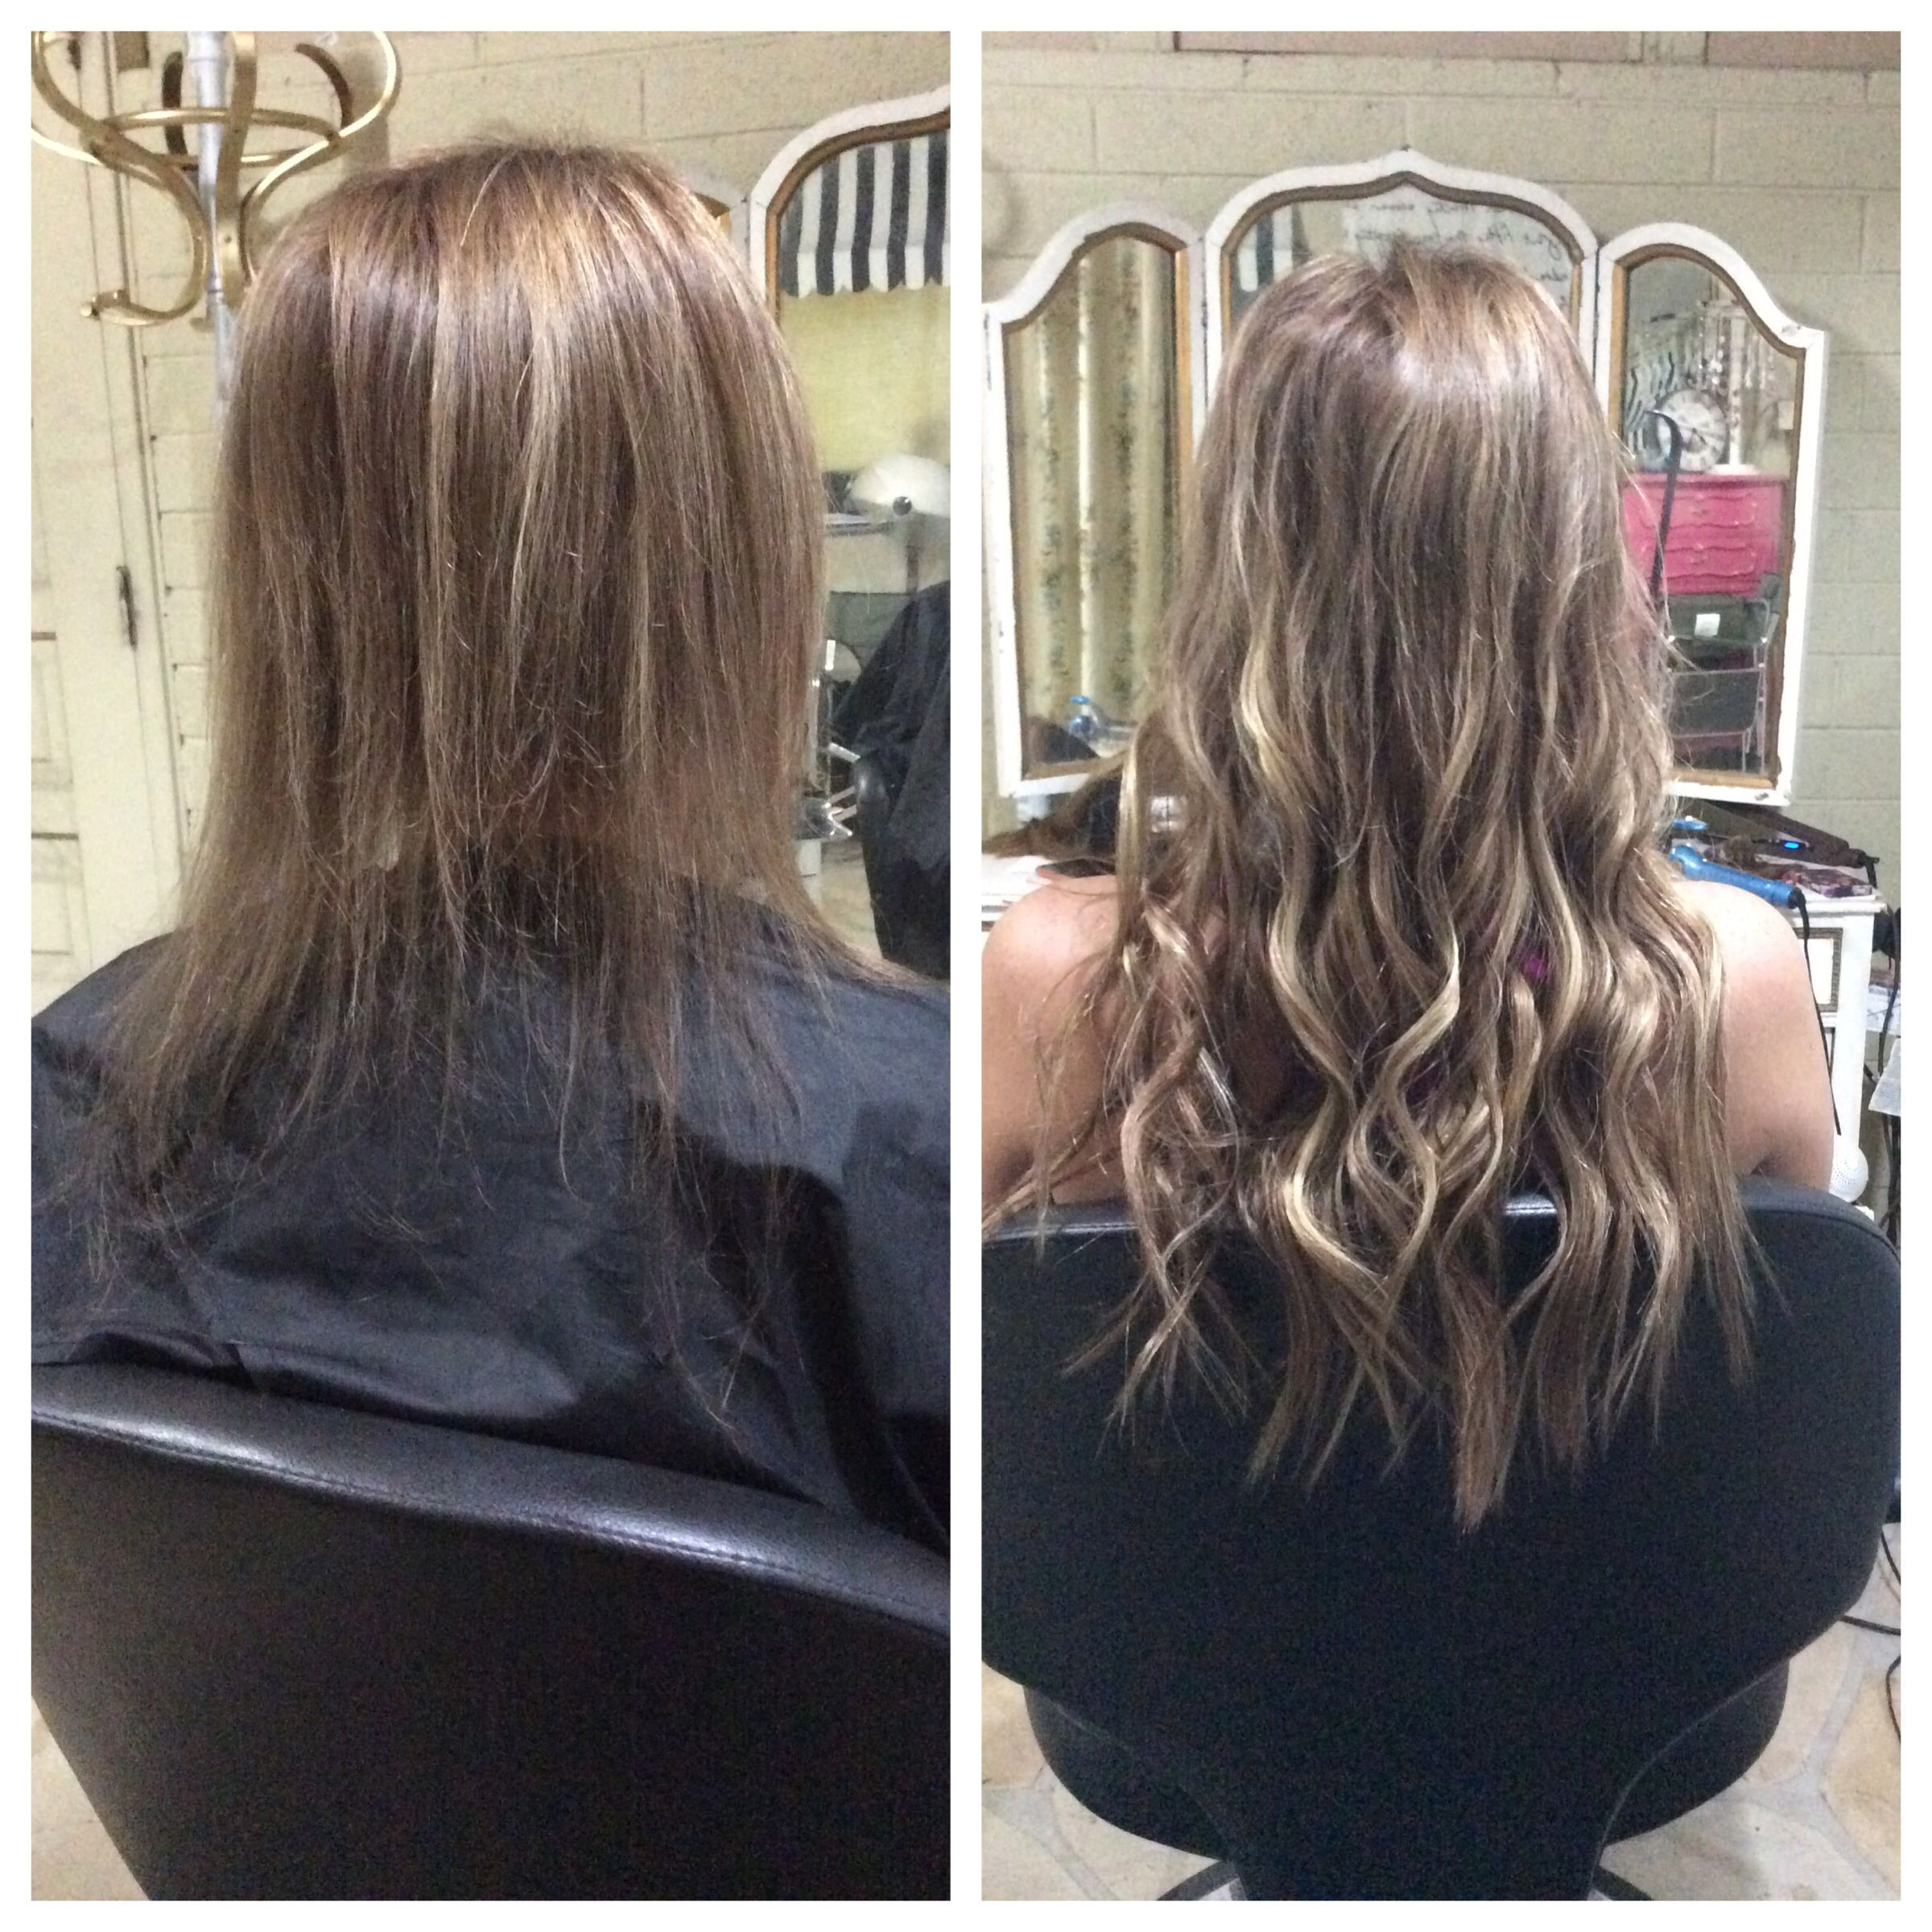 Hair extensions before and after with natural beaded rows great hair extensions before and after with natural beaded rows great for fine hair kpstyling pmusecretfo Choice Image